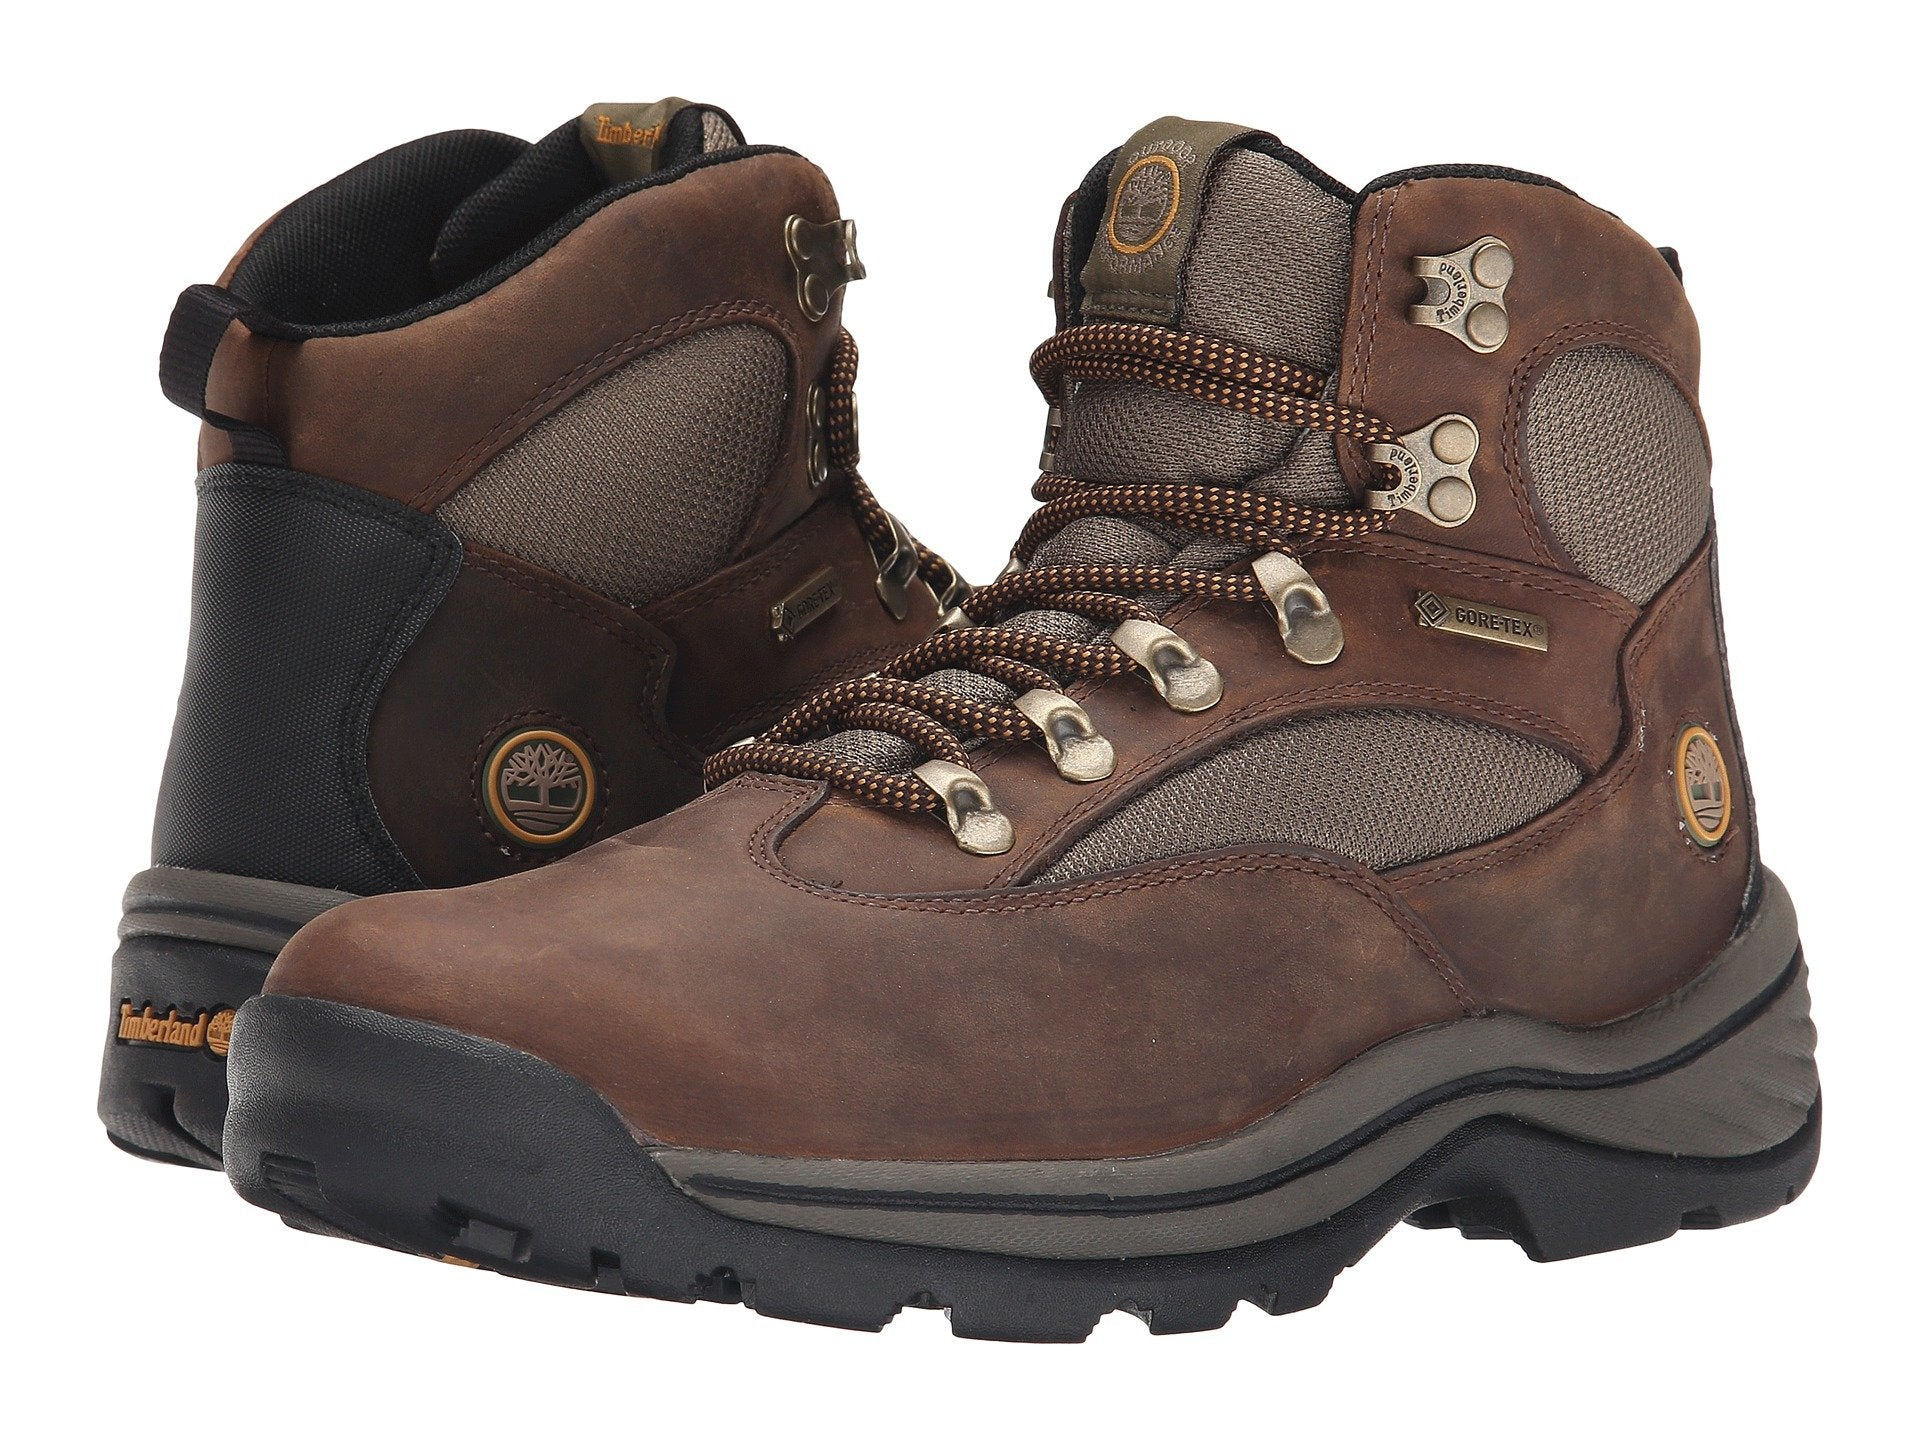 664c7ddafac Timberland Chocorua Trail with Gore-Tex® Membrane - Green/Brown / 5